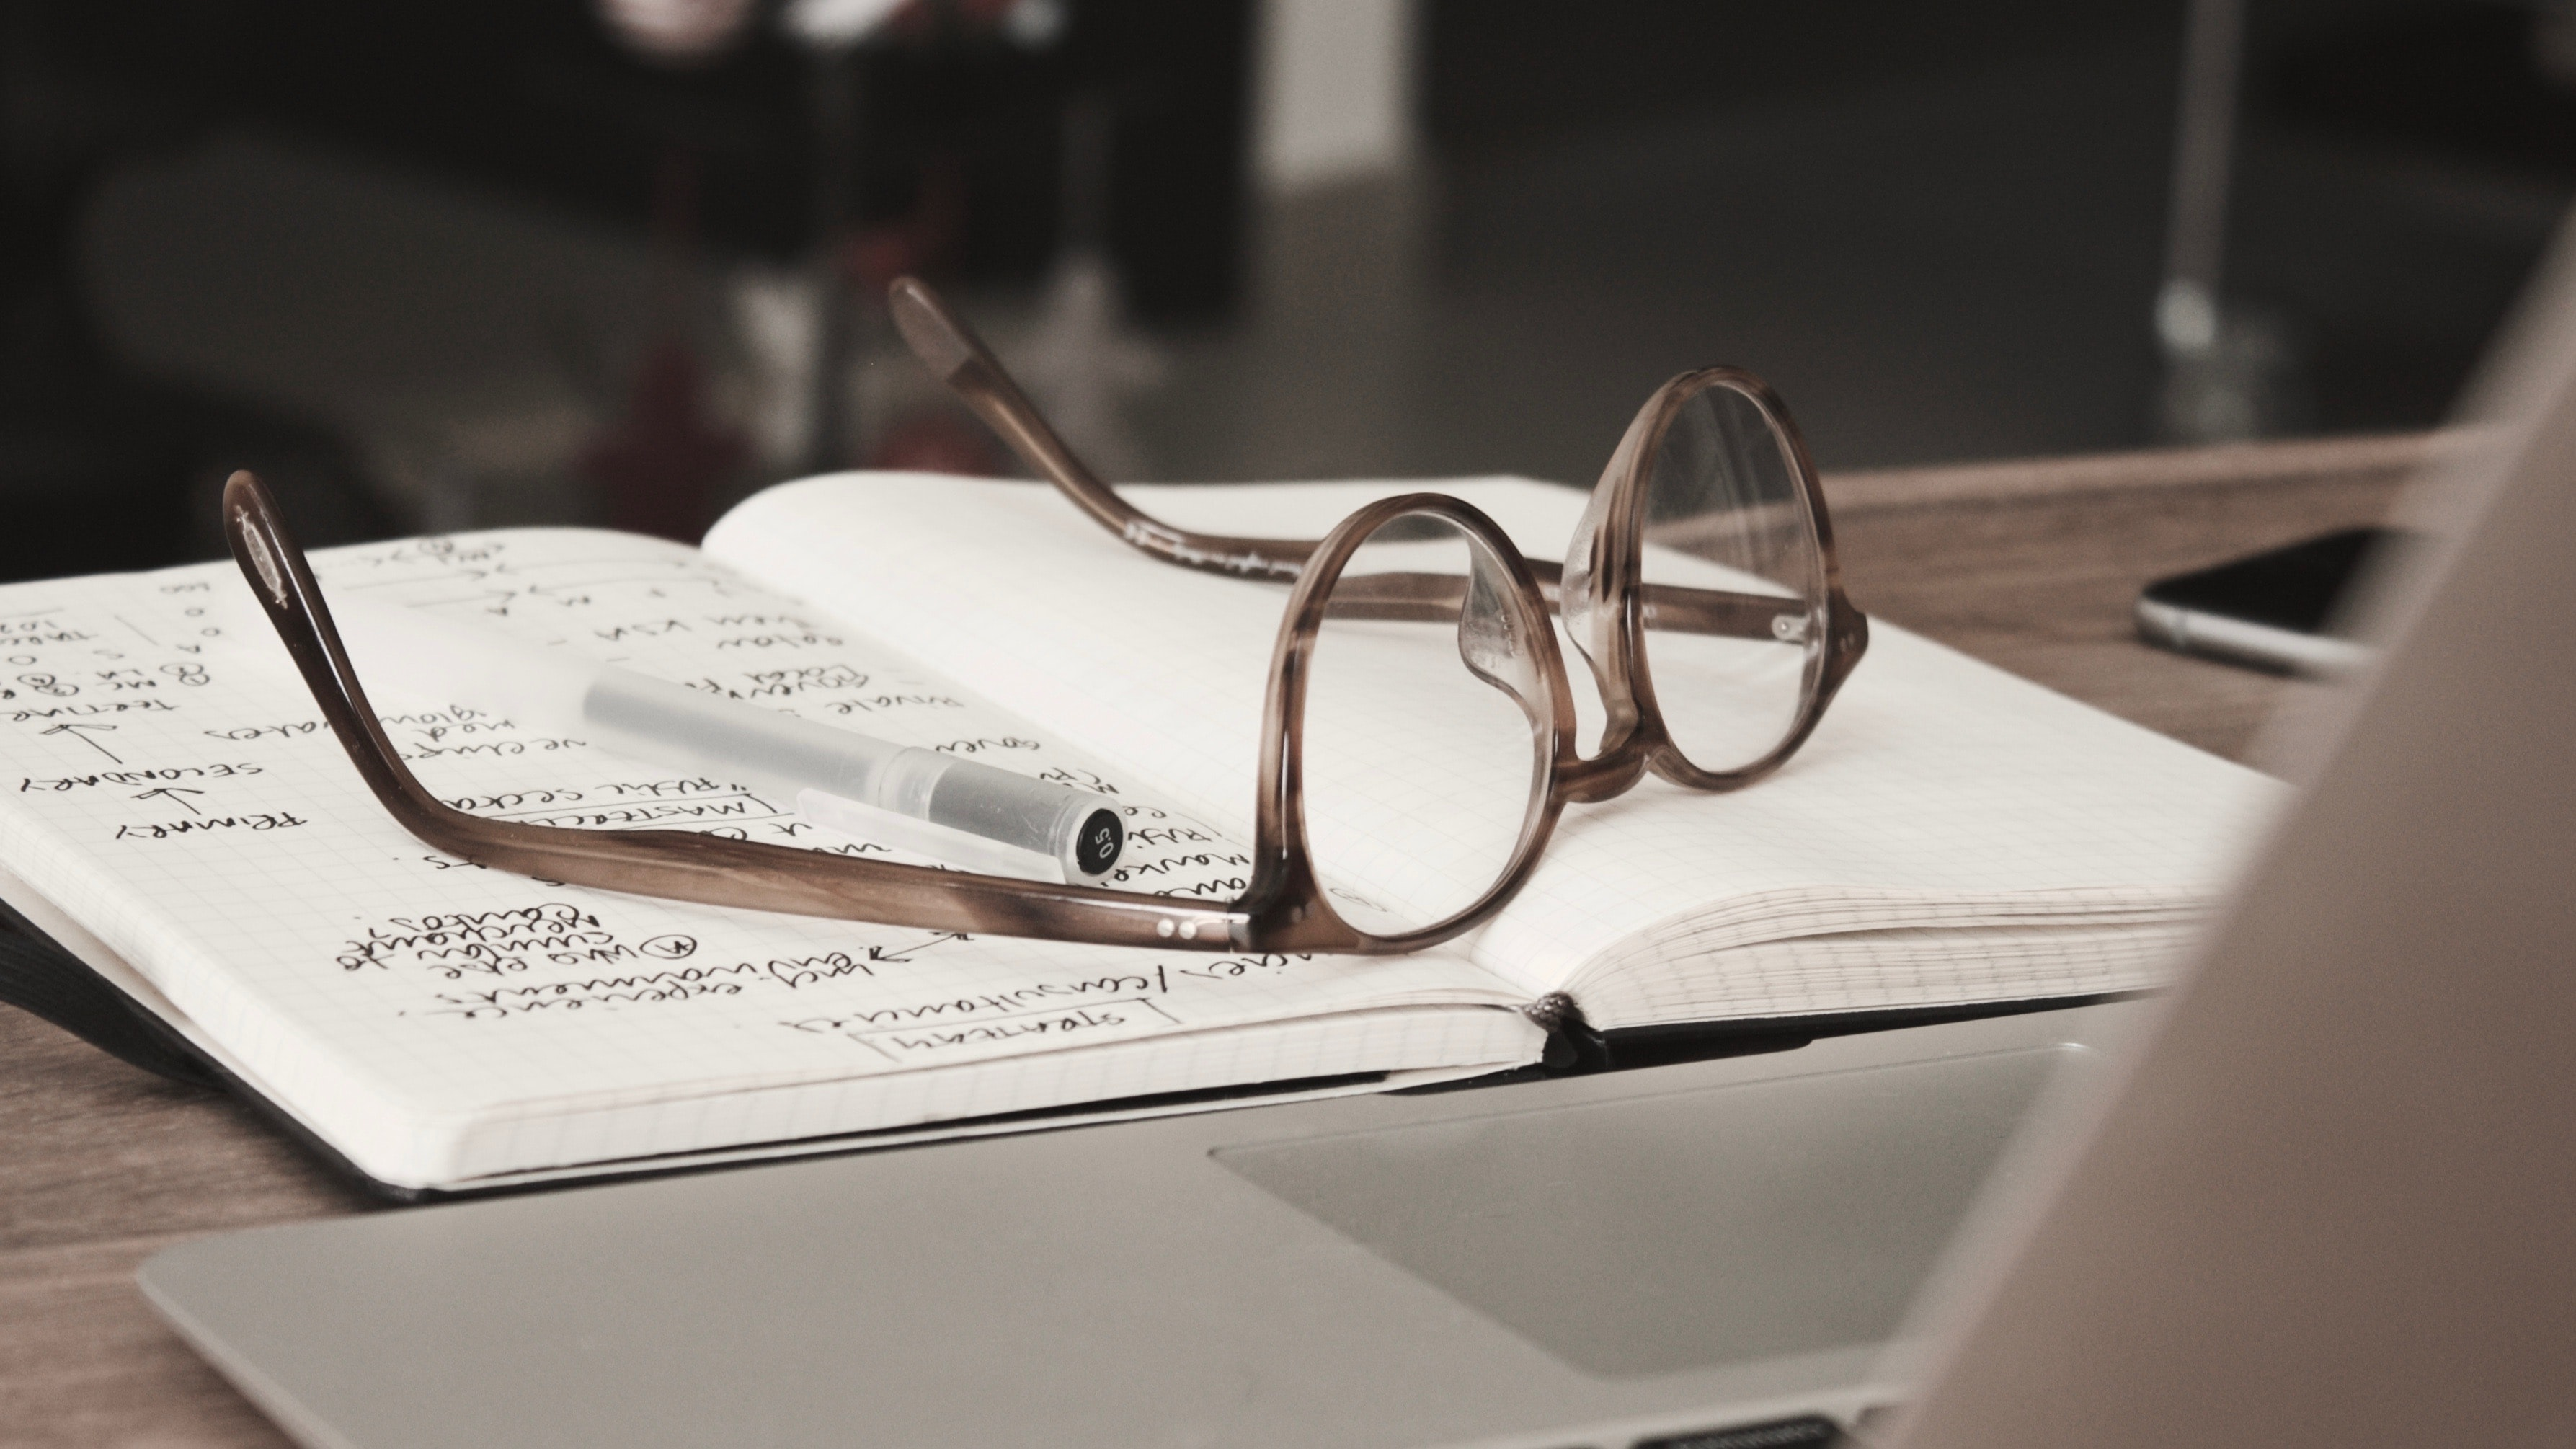 A pair of glasses resting on top of an open notebook.